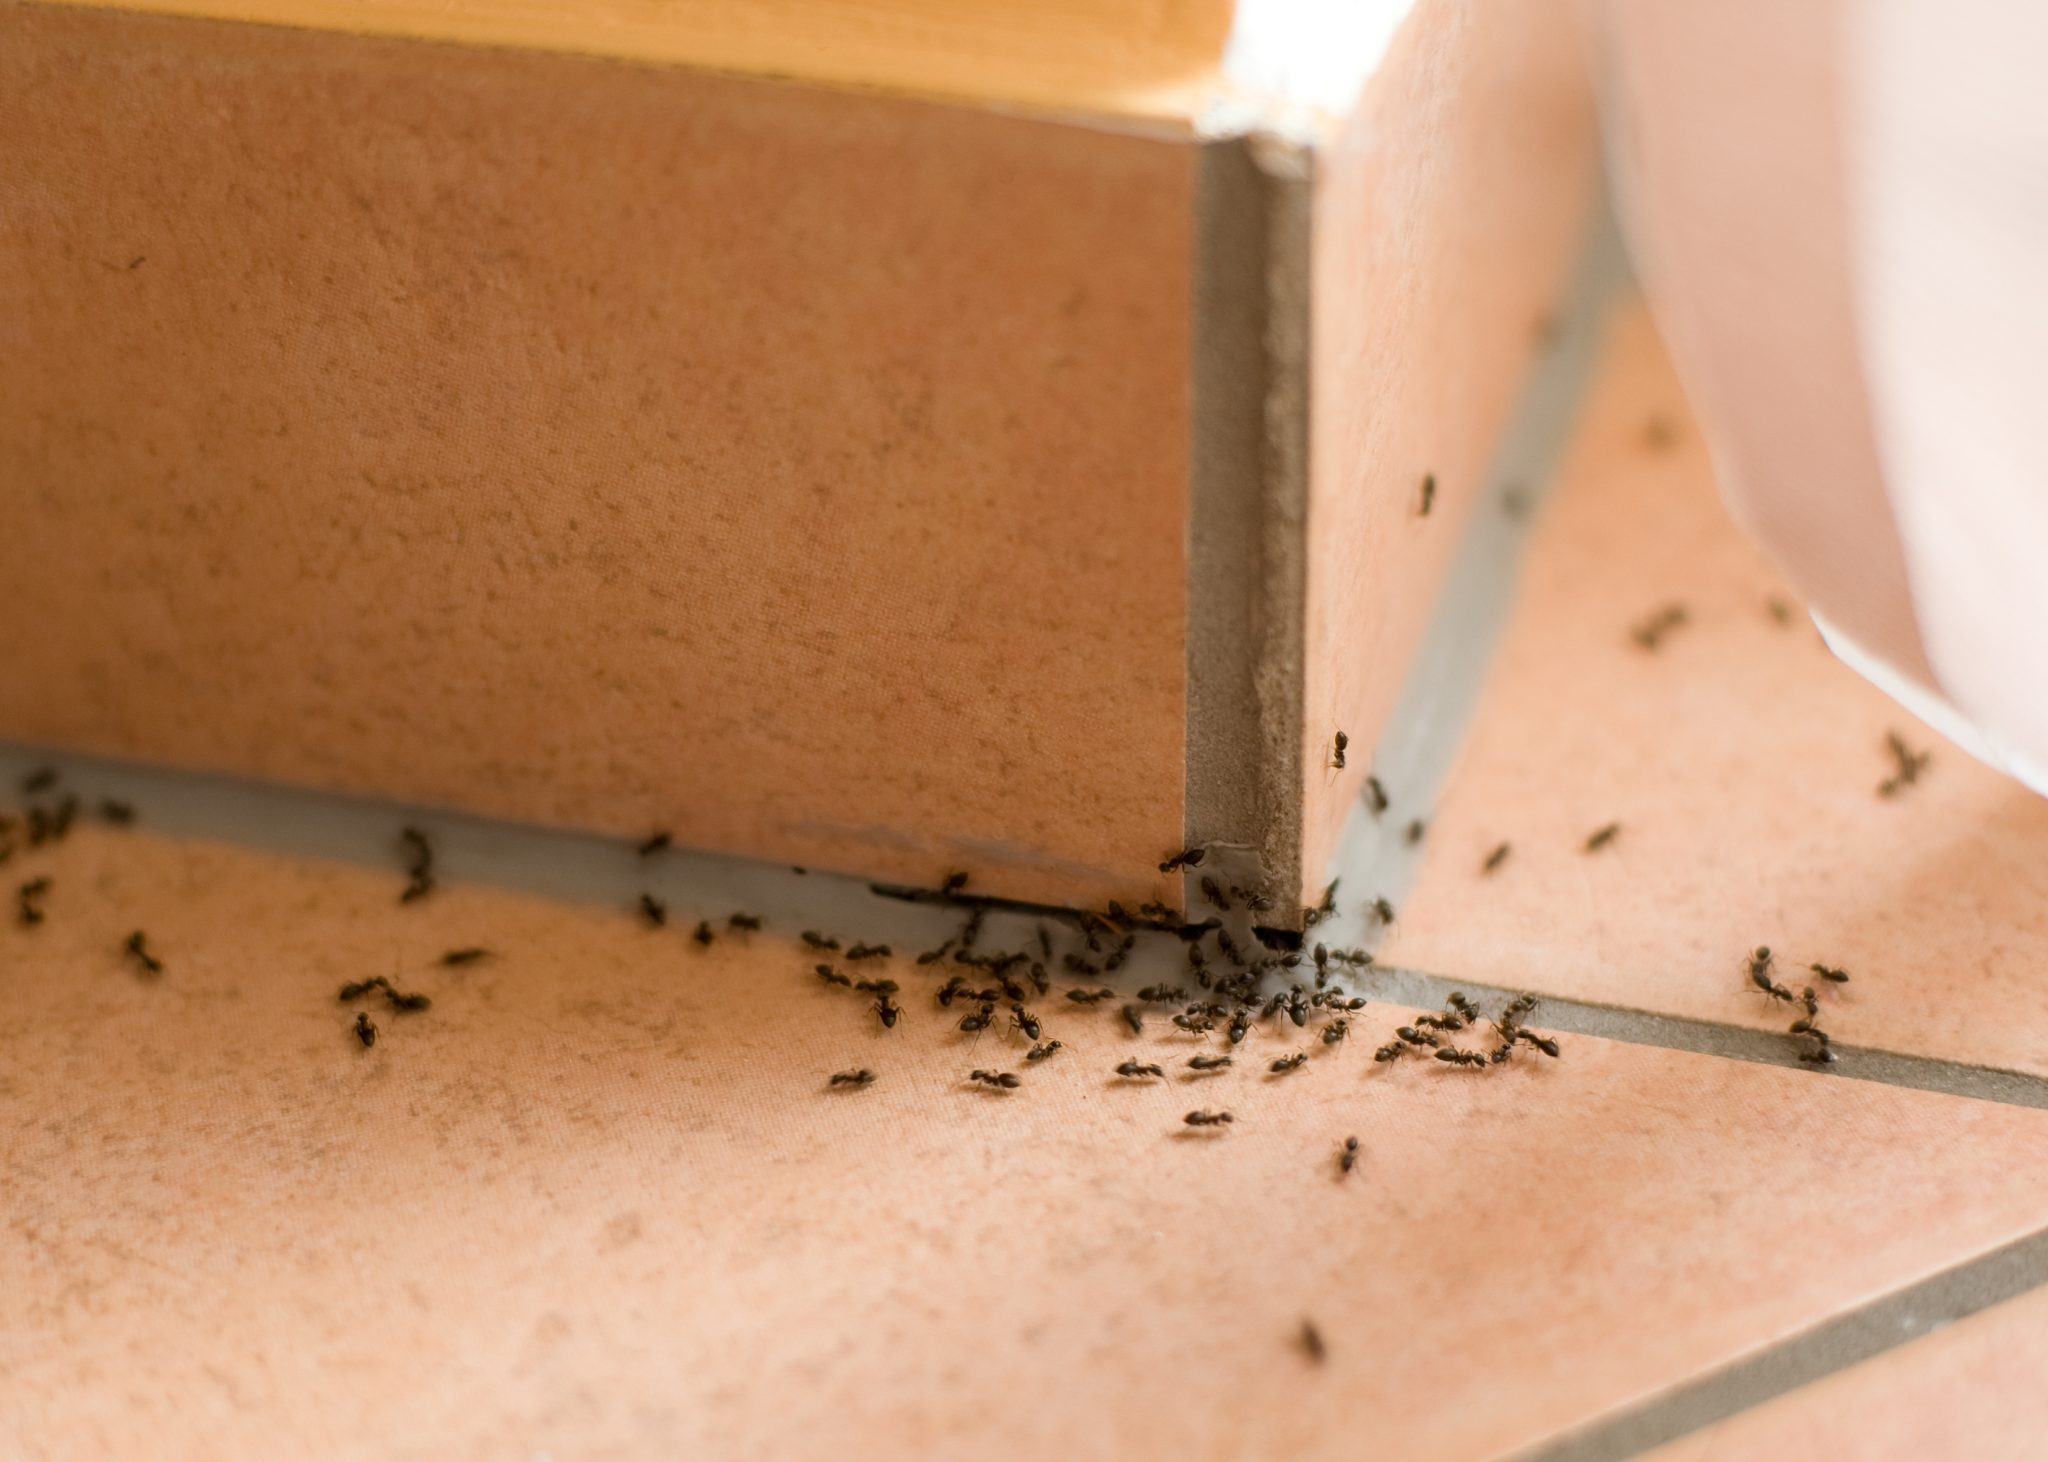 home-remedies-make-ant-problem-worse